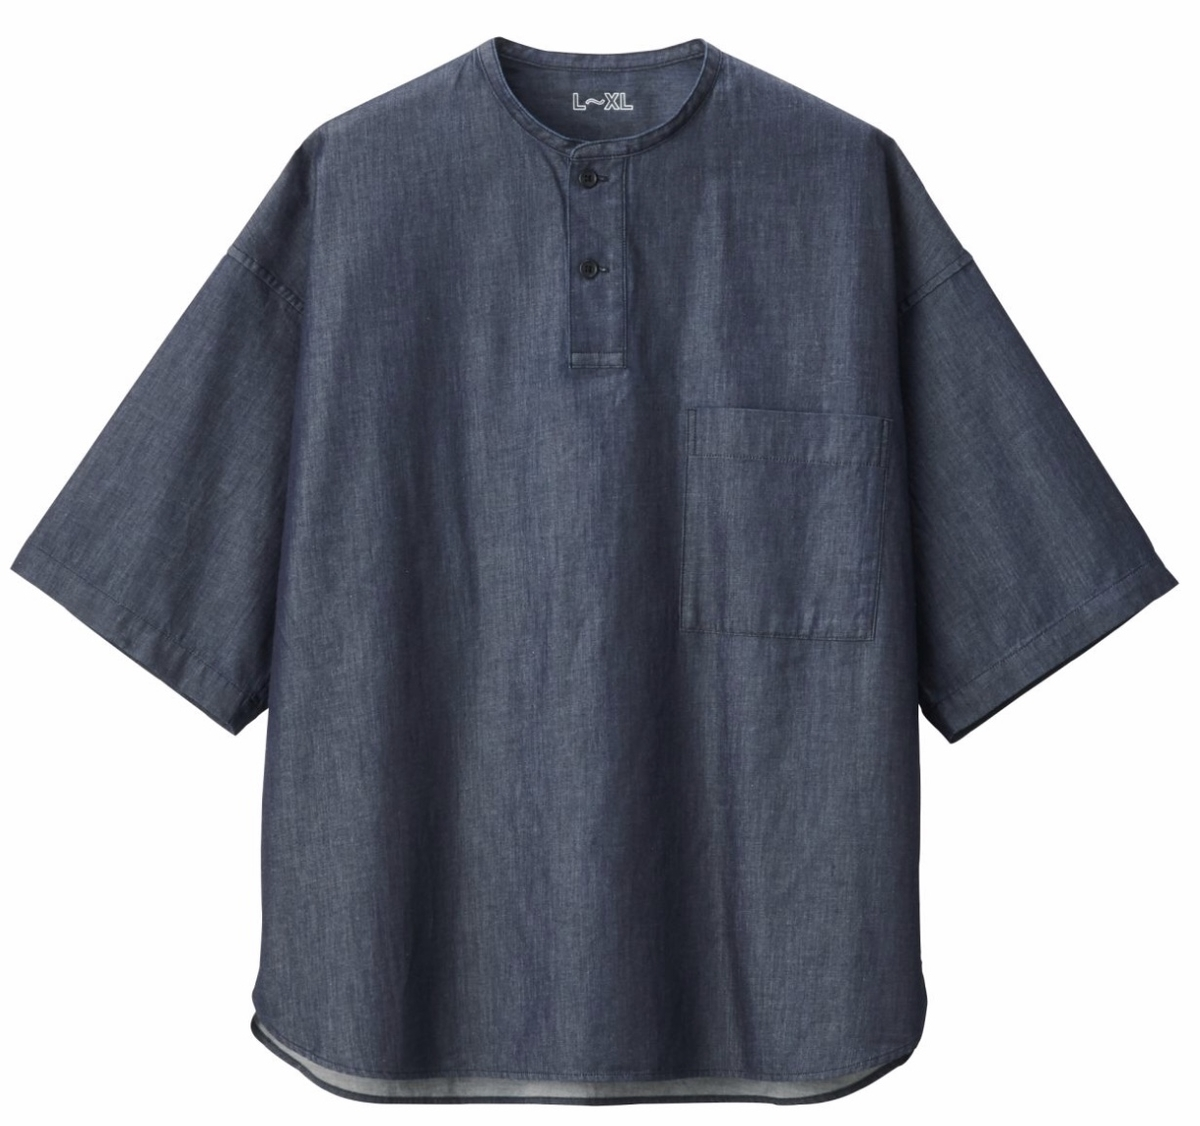 f:id:fortheshirt:20190603115728j:plain